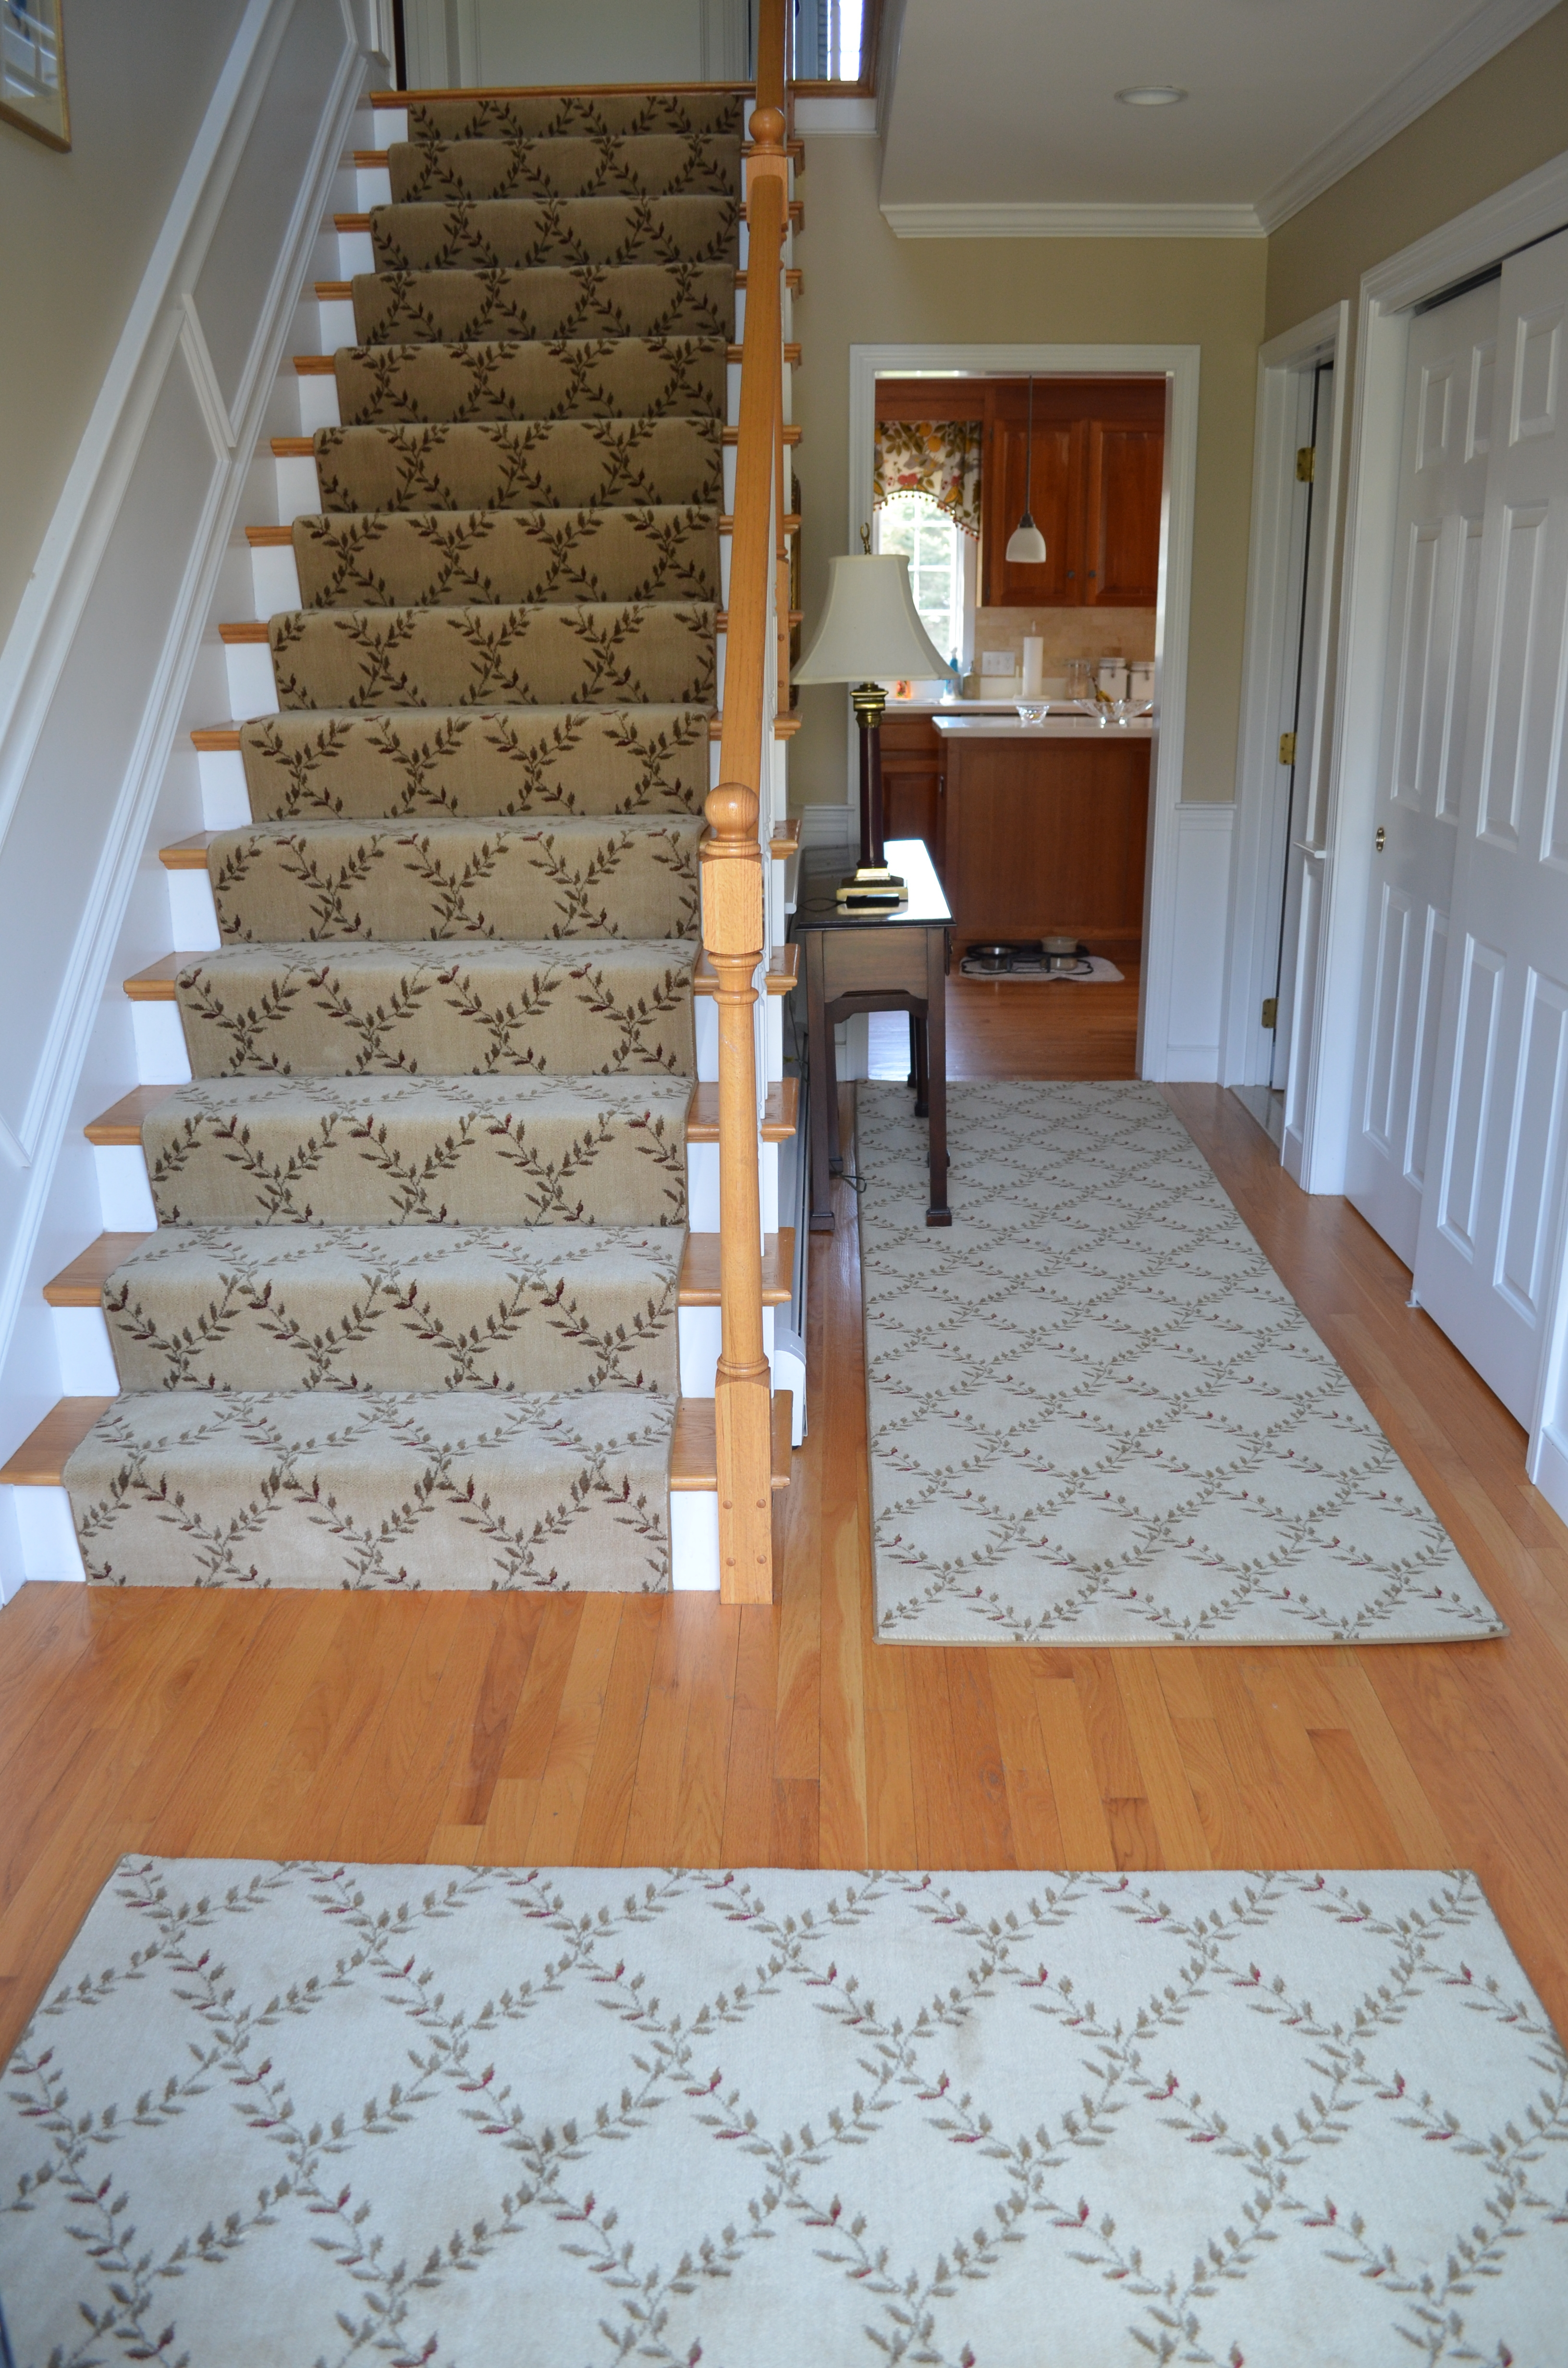 Interior Cream Carpet Hallway Combined With Gray And White Wall Regarding Carpet Runners Hallways (#18 of 20)